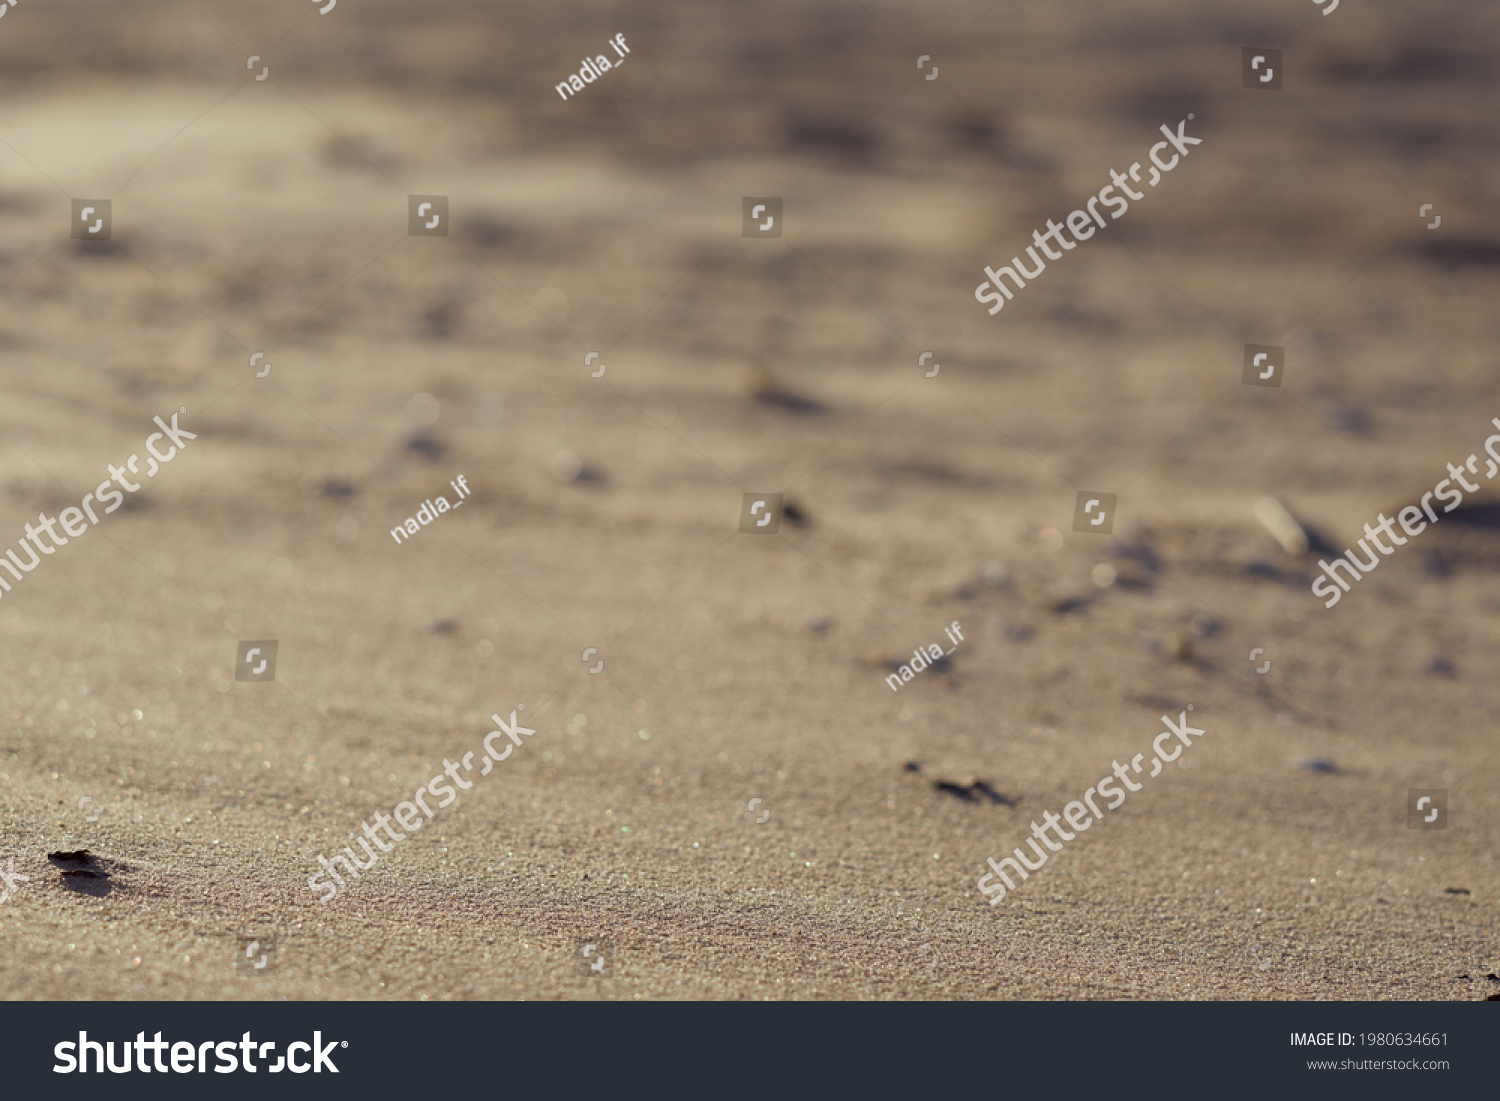 sand beach background and texture. High quality photo #1980634661